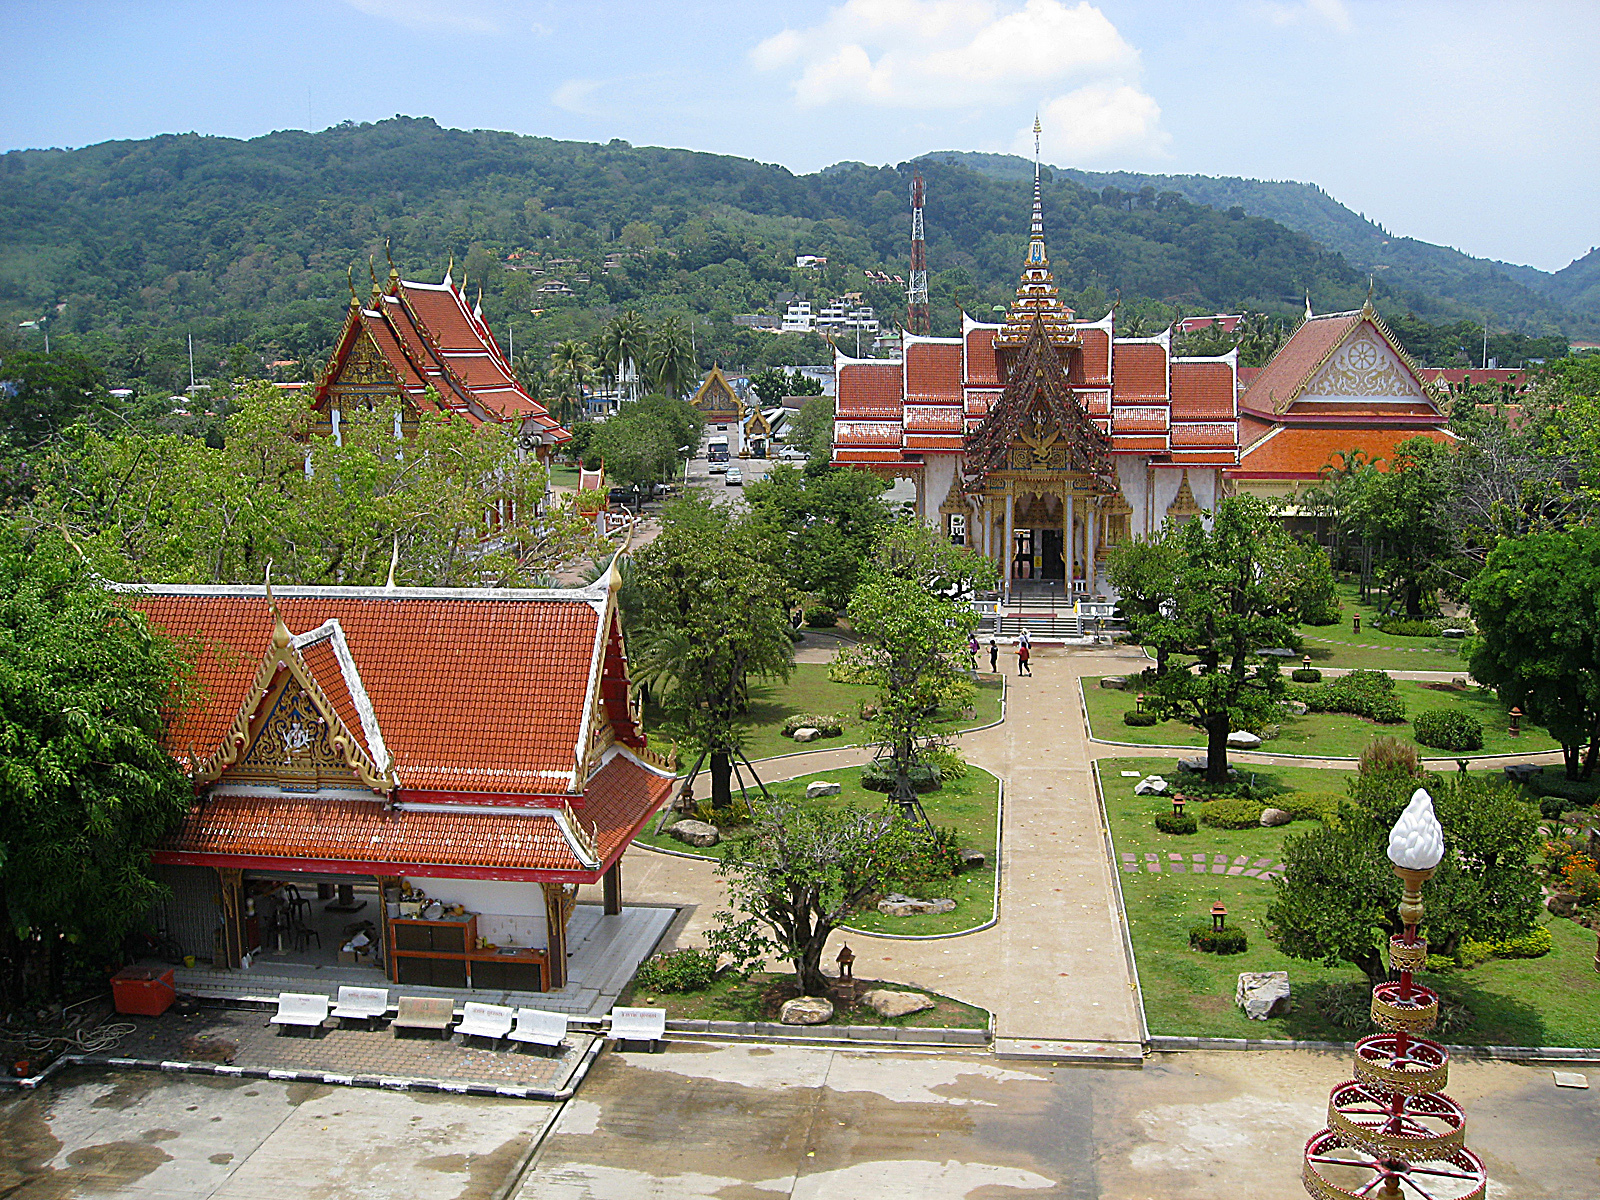 Wat Chalong Phuket Location Map,Location Map of Wat Chalong Phuket,Wat Chalong Phuket Island Thailand accommodation destinations attractions hotels map reviews photos pictures,wat chalong temple phuket thailand dress code entrance fee,wat chalong,chalong,chalong phuket,chalong bay,chalong temple,chalong beach hotel & spa,chalong bay rum,mee calong,aochalong villa & spa,chalong chalet resort & longstay,chalong thailand,chalong miracle lakeview,tinvui info cha long,ao chalong,chalong ink,chalong gym,ao chalong yacht club,homepro chalong,chalong circle,coco chalong,chalong sea breeze,cha long dang o dau,chalong hotels,chalong phuket map,chalong pier ferry,chalong co. ltd,windguru chalong bay,chalong shooting range,chalong beachfront residence,chalong muay thai,chalong villa,chalong phuket nightlife,chalong restaurants,chalong mansion,chalong to patong,chalong pier phuket map,chalong bay map,chalong accommodation,chalong map,temple de chalong,chalong police station,tesco lotus thalang phuket,chalong yacht club,cha long long thuong xot,chalong language school,chalong boutique inn,chalong pool villa,chalong massage,chalong market,chalong nightlife,chalong sea view resort,chalong fitness,chalong bay hotels,aochalong villa & spa phuket,chalong bay view condominiums,chalong phuket thailand,chalong latex industry co. ltd,chalong phuket accommodation,chalong apartment,chalong highlands,chalong to phi phi,chalong muang phuket,chalong bay beach,chalong bay pier,chalong glass aluminum co. ltd,chalong pier map,chalong co ltd thailand,chalong sea view villa,wine connection chalong phuket,wat chalong map,chalong bay phuket map,chalong harbour estate,chalong to phuket airport,chalong villa gym,chalong temple phuket map,chalong spa,chalong bay distillery,shillong disco,chalong bay to patong,chalong residences,chalong pier to coral island,chalong sauna,chalong map phuket,shanti lodge chalong,chalong hotels phuket,chalong resort phuket,chalong rawai,chalong phuket hotels,temple de chalong phuket,chalong house for rent,wat chalong in phuket,chalong thailand map,chalong marina,chalong resort,cha cha long beach,map of chalong phuket,chalong elephant trekking,map of chalong,chalong attractions,chalong apartment rent,villa zolitude chalong,chalong house,chalong post office,wat chalong phuket map,chalong diving,chalong beach phuket map,chalong krung road,chalong restaurants phuket,nomads chalong bay,the one chalong,chalong ferry,chalong sea breeze guest house,nomads chalong beach phuket,chalong guest house,kfc chalong,chalong living home,happy cottage chalong,chalong rentals,chalong bay thailand map,chalong wat,signature chalong,chalong villa for rent,ao chalong phuket map,chalong aquarium,detox chalong,chalong to phuket town,wat chalong opening hours,chalong hotel and spa phuket,chalong medical dental center,dwell chalong,chalong dive shops,chalong waxing,serenity chalong,chalong things do,ao chalong map,chalong bay rum tour,cha long cha ye mao,chalong real estate,chalong temple fair 2015,pictures of chalong bay,chalong temple fair,chalong tiger muay thai,chalong temple big buddha,chalong inter clinic,ao chalong yacht club facebook,chalong things to do,chalong guide,chalong racha ferry,chalong shopping,chalong pier google maps,youtube chalong,chalong latex,chalong hardy,chalong wine connection,wat chalong entrance fee,chalong inn phuket,chalong map google,chalong beach hotel & spa map,chalong go go bars,chalong shopping centre,centro cha long beach,chalong elite fitness,chalong thailand nightlife,kata chalong,chalong fitness center,chalong villa resort and spa tripadvisor,wat chalong location map,wat chalong dress code,chalong green view,chalong temple phuket address,chalong harbour estate phuket,chalong pier beer garden,hot yoga chalong,chalong marina phuket,kite zone chalong,chalong bungy jump,chalong koh lanta,chalong koh phi phi,nomads chalong beach phuket tripadvisor,chalong to racha yai,chalong reggae bar,chalong phuket fishing